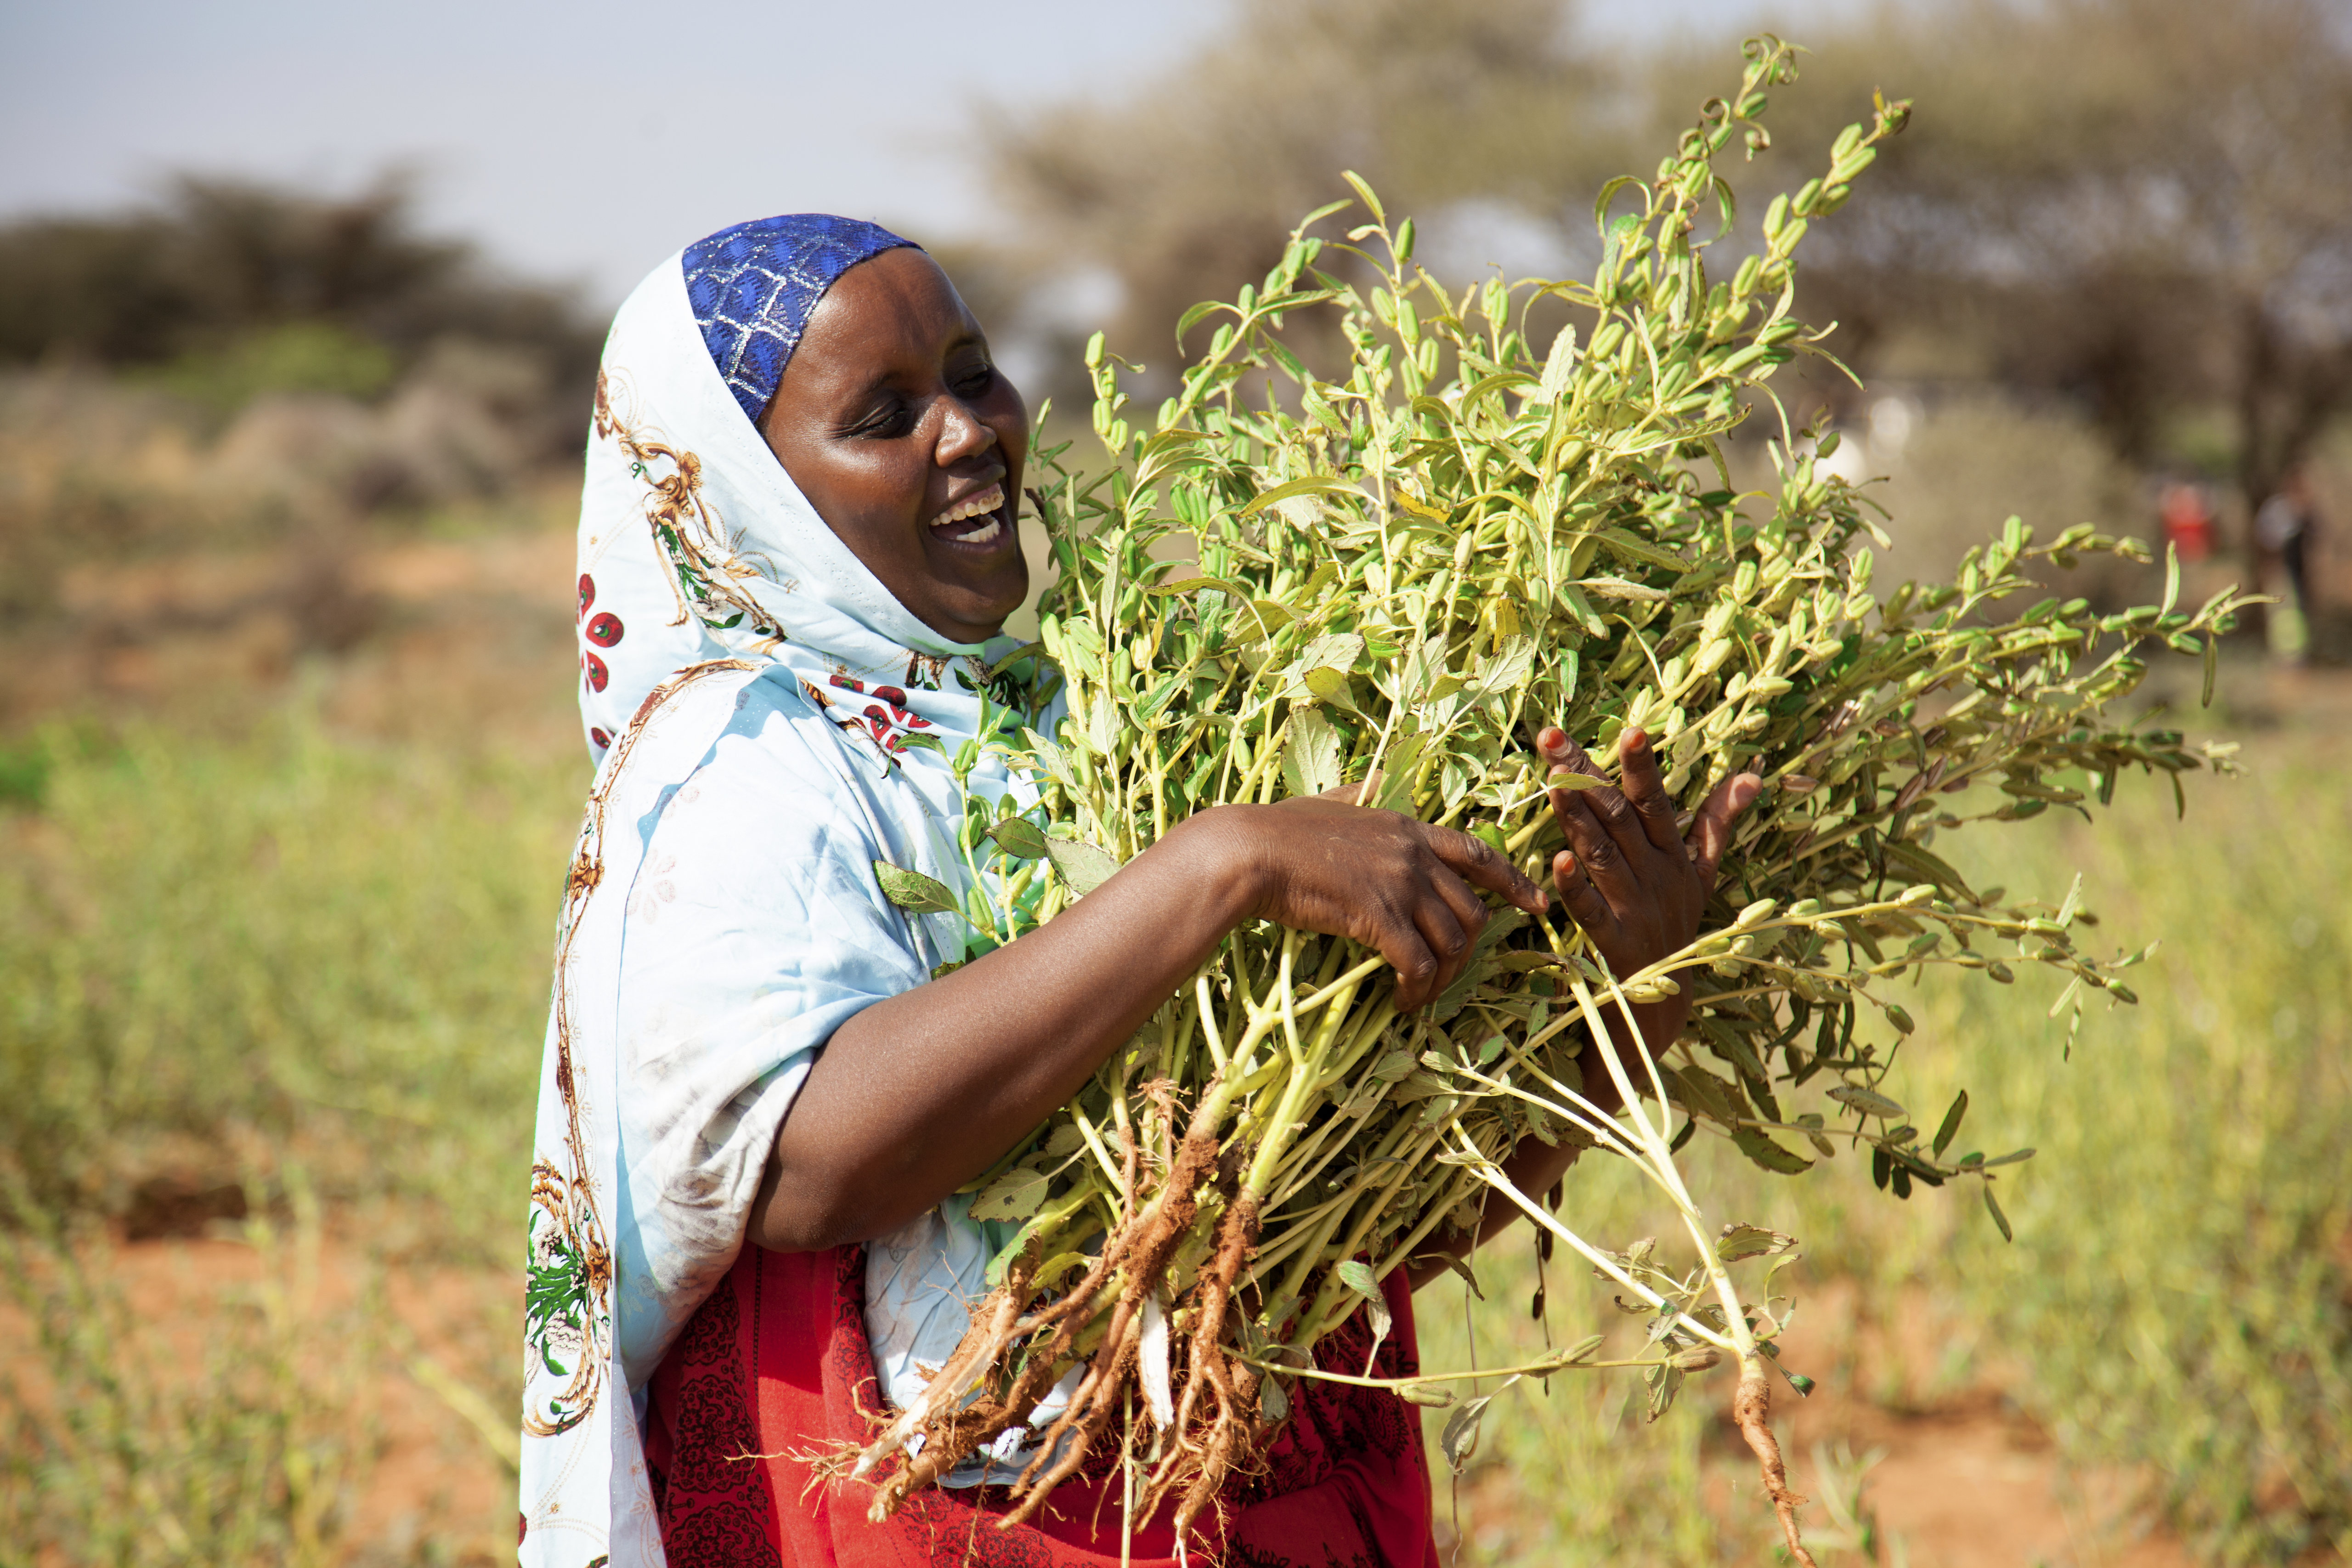 Strengthening the resilience of livelihoods in Somaliland